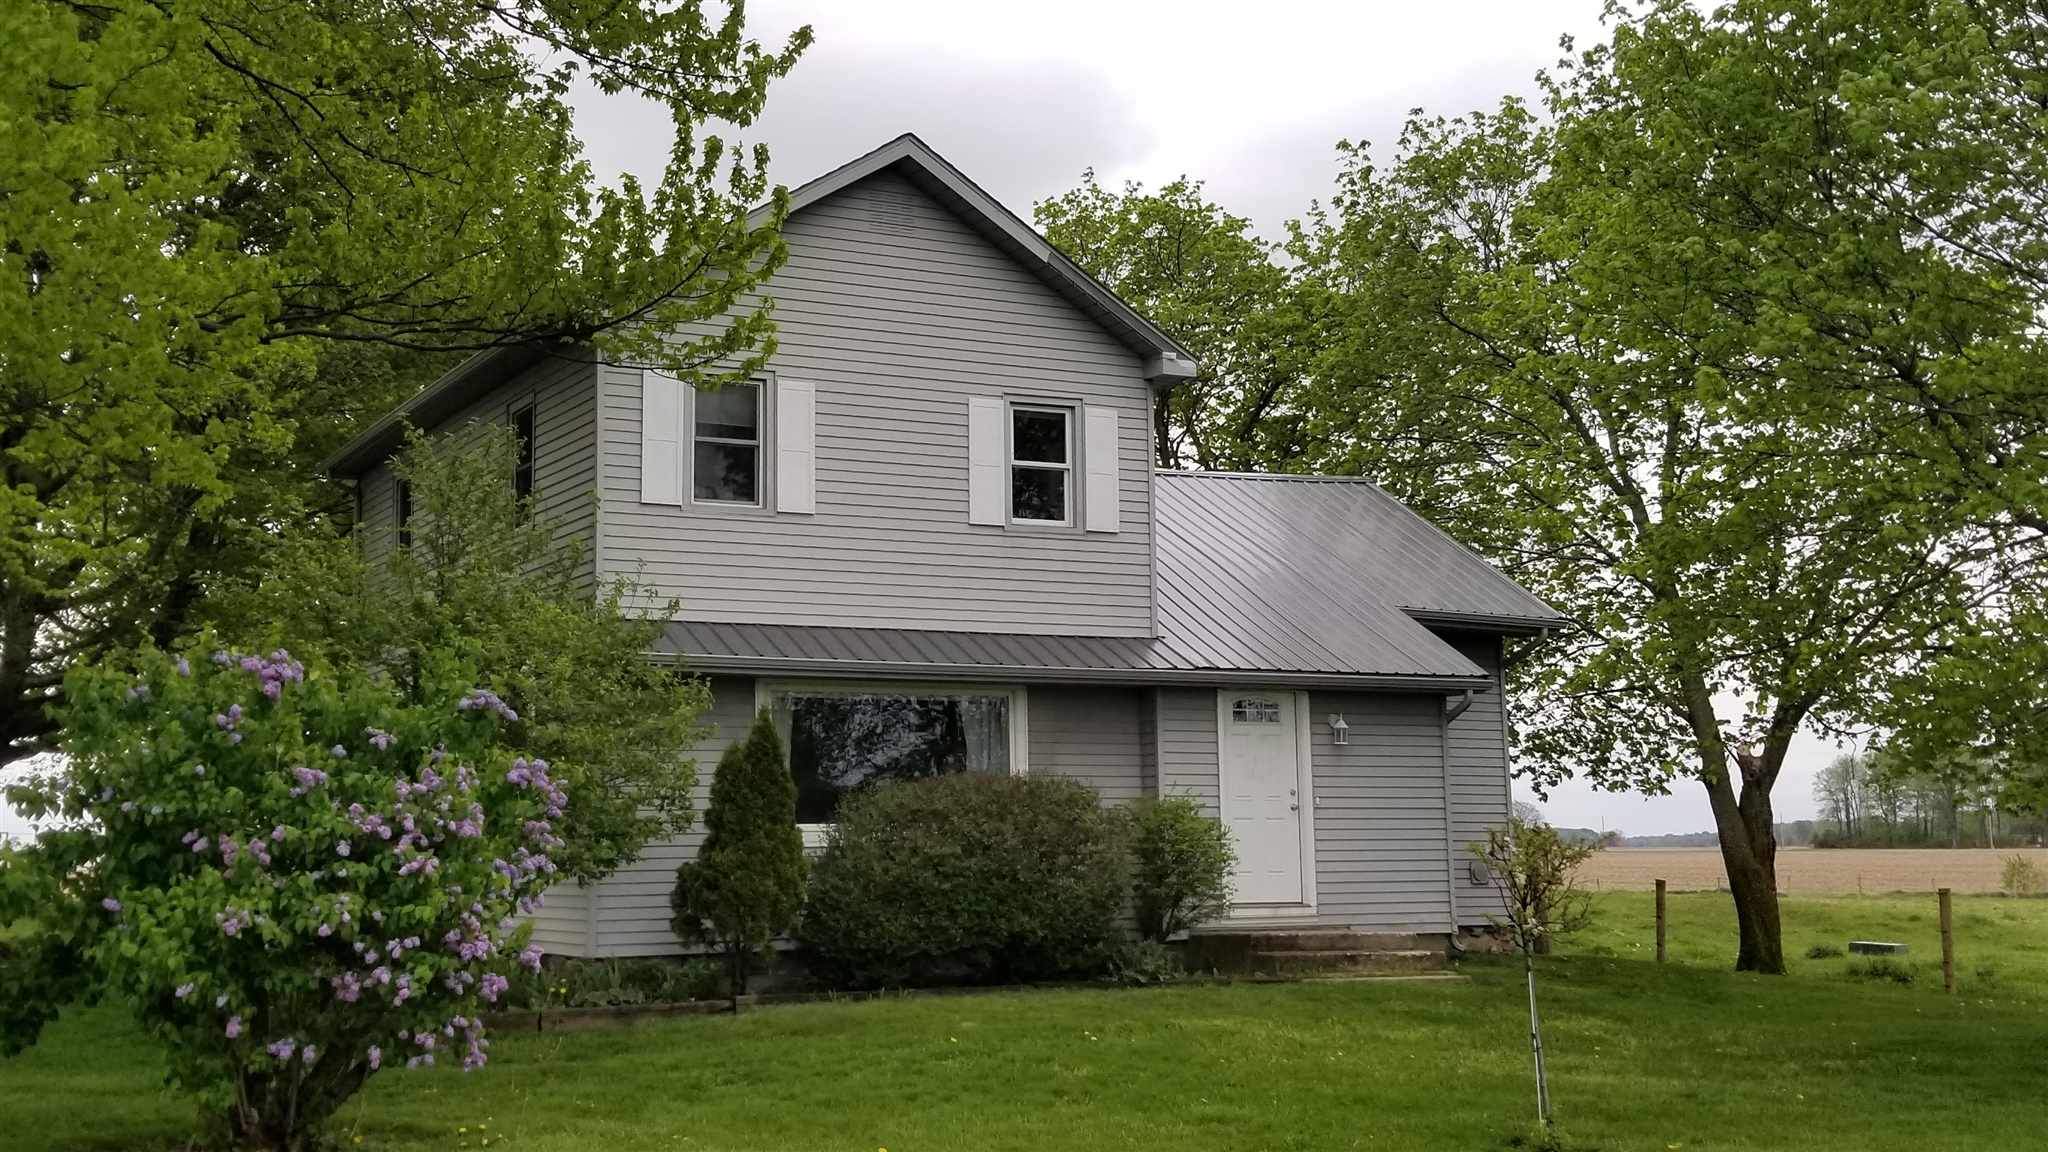 69742 State Road 19, Nappanee, IN 46550